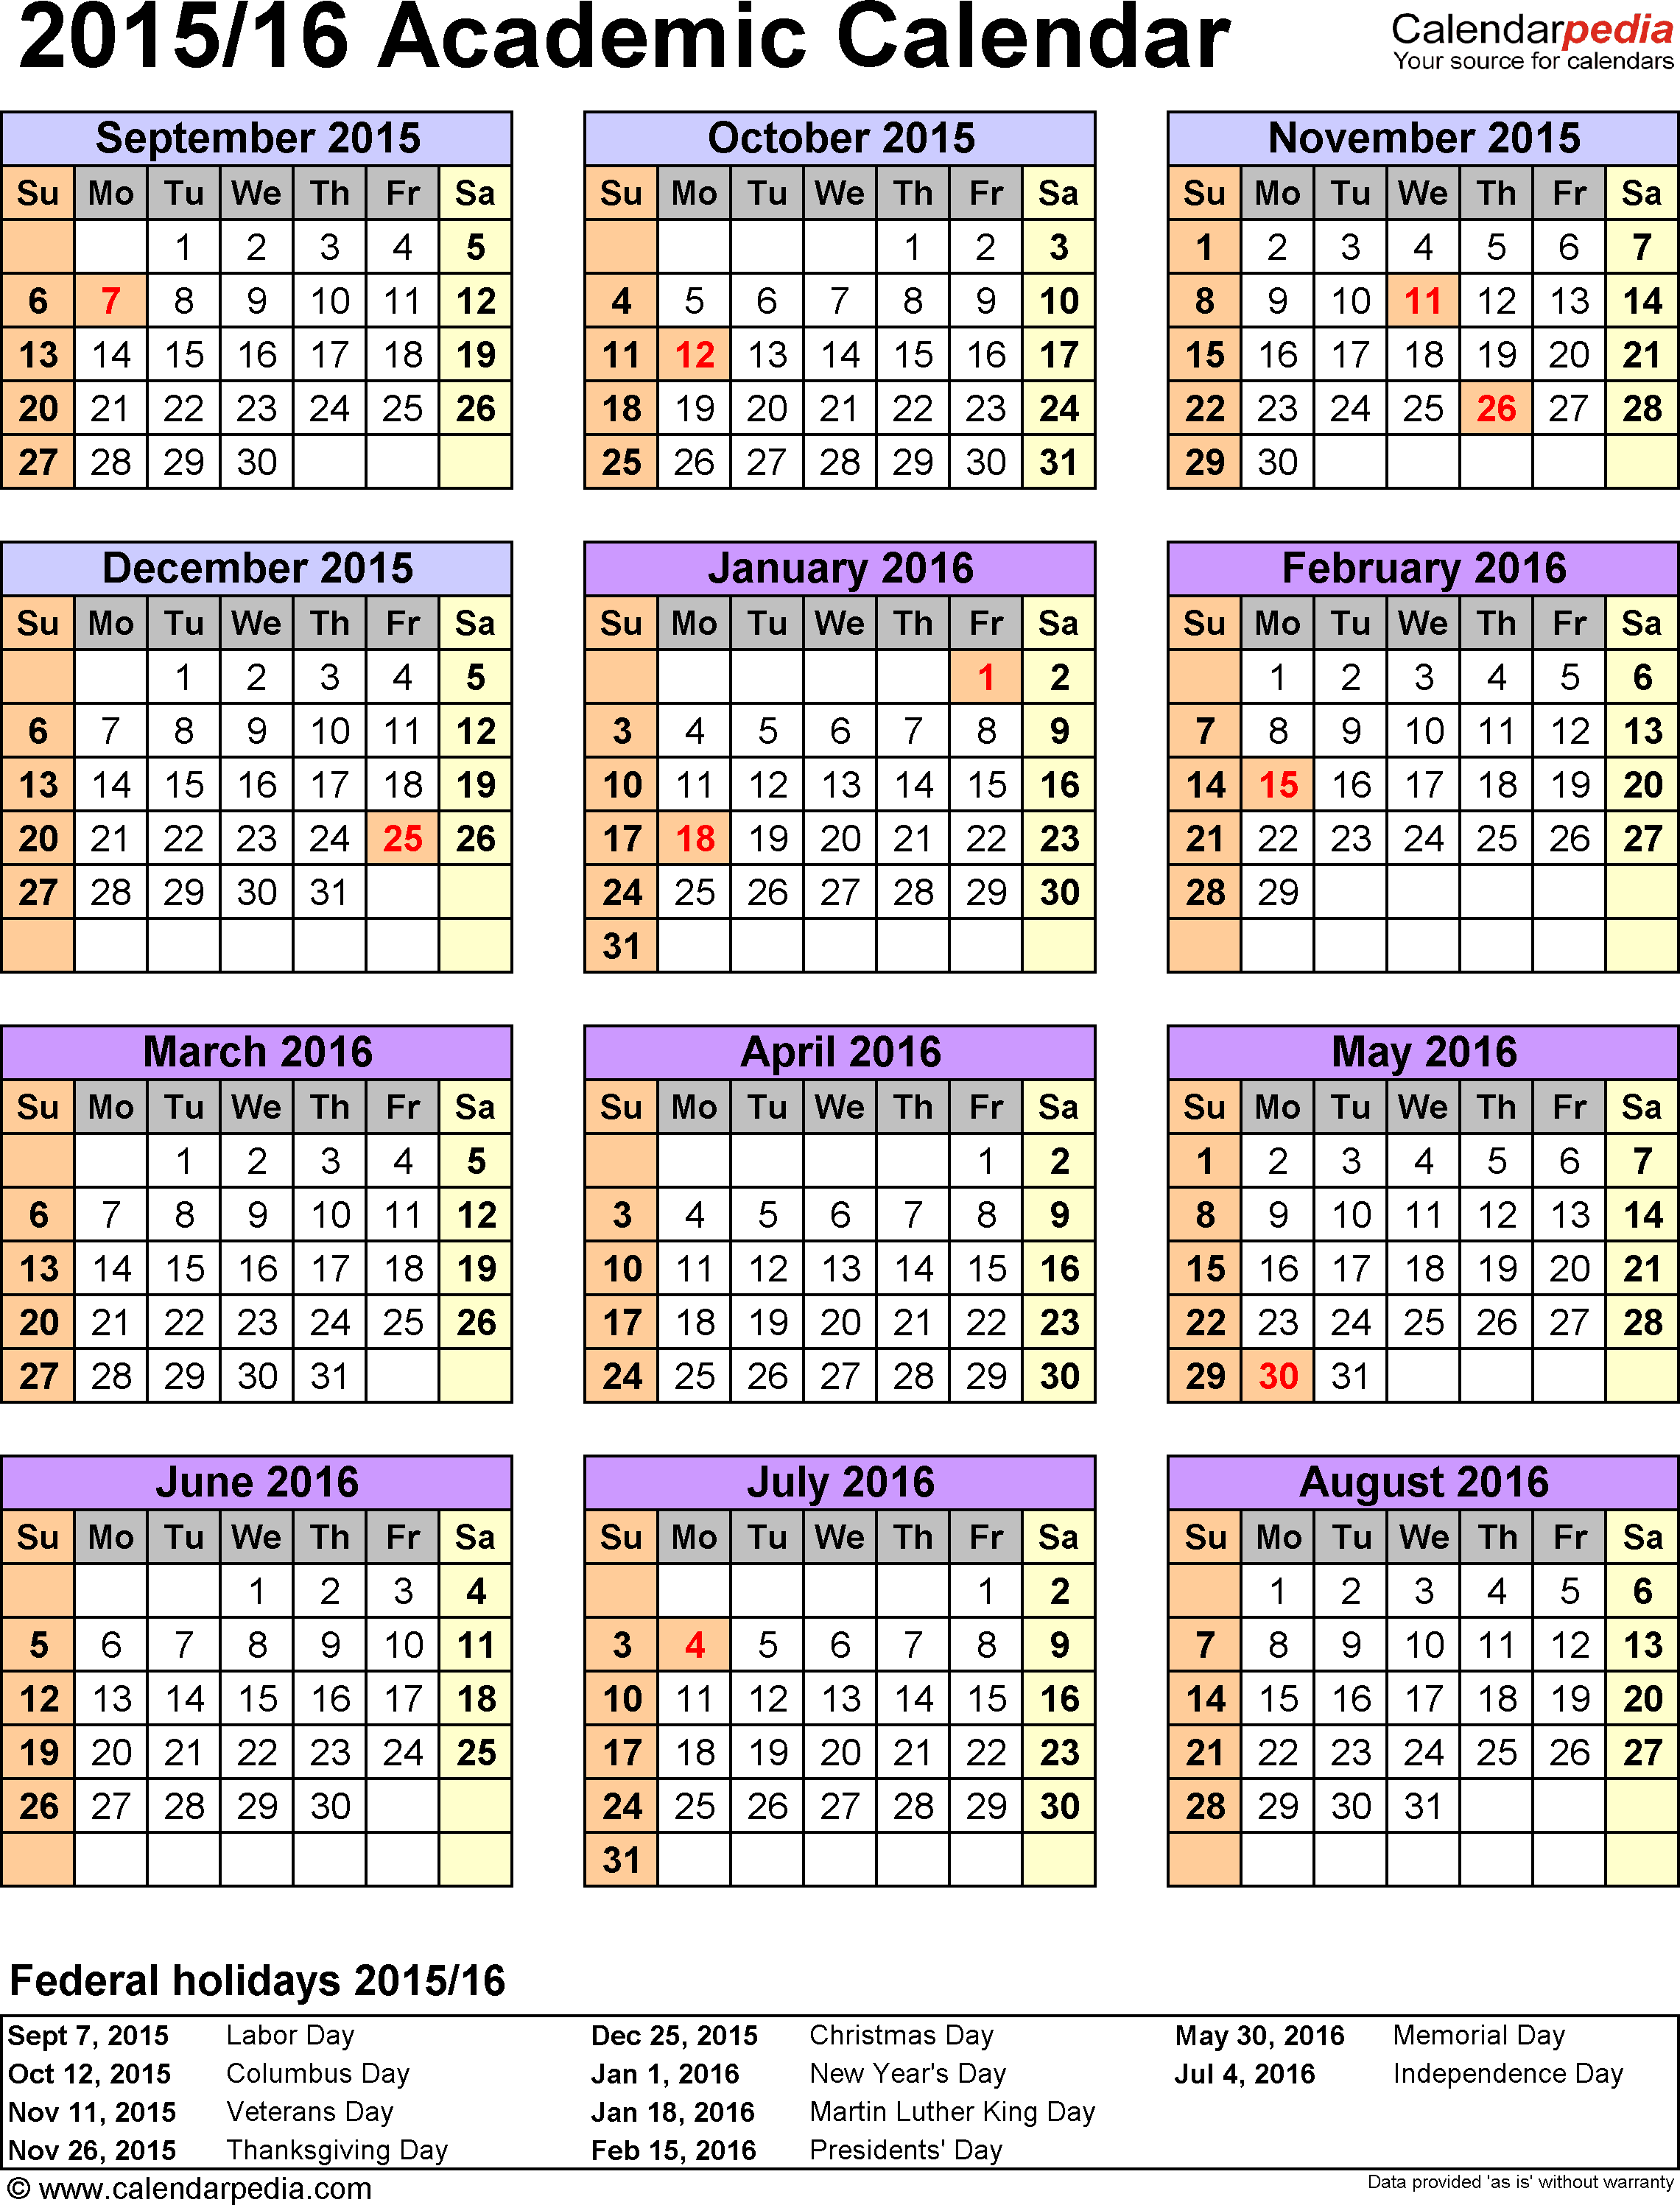 Download Template 7: Academic calendar 2015/16 in PDF format, portrait, 1 page, year at a glance